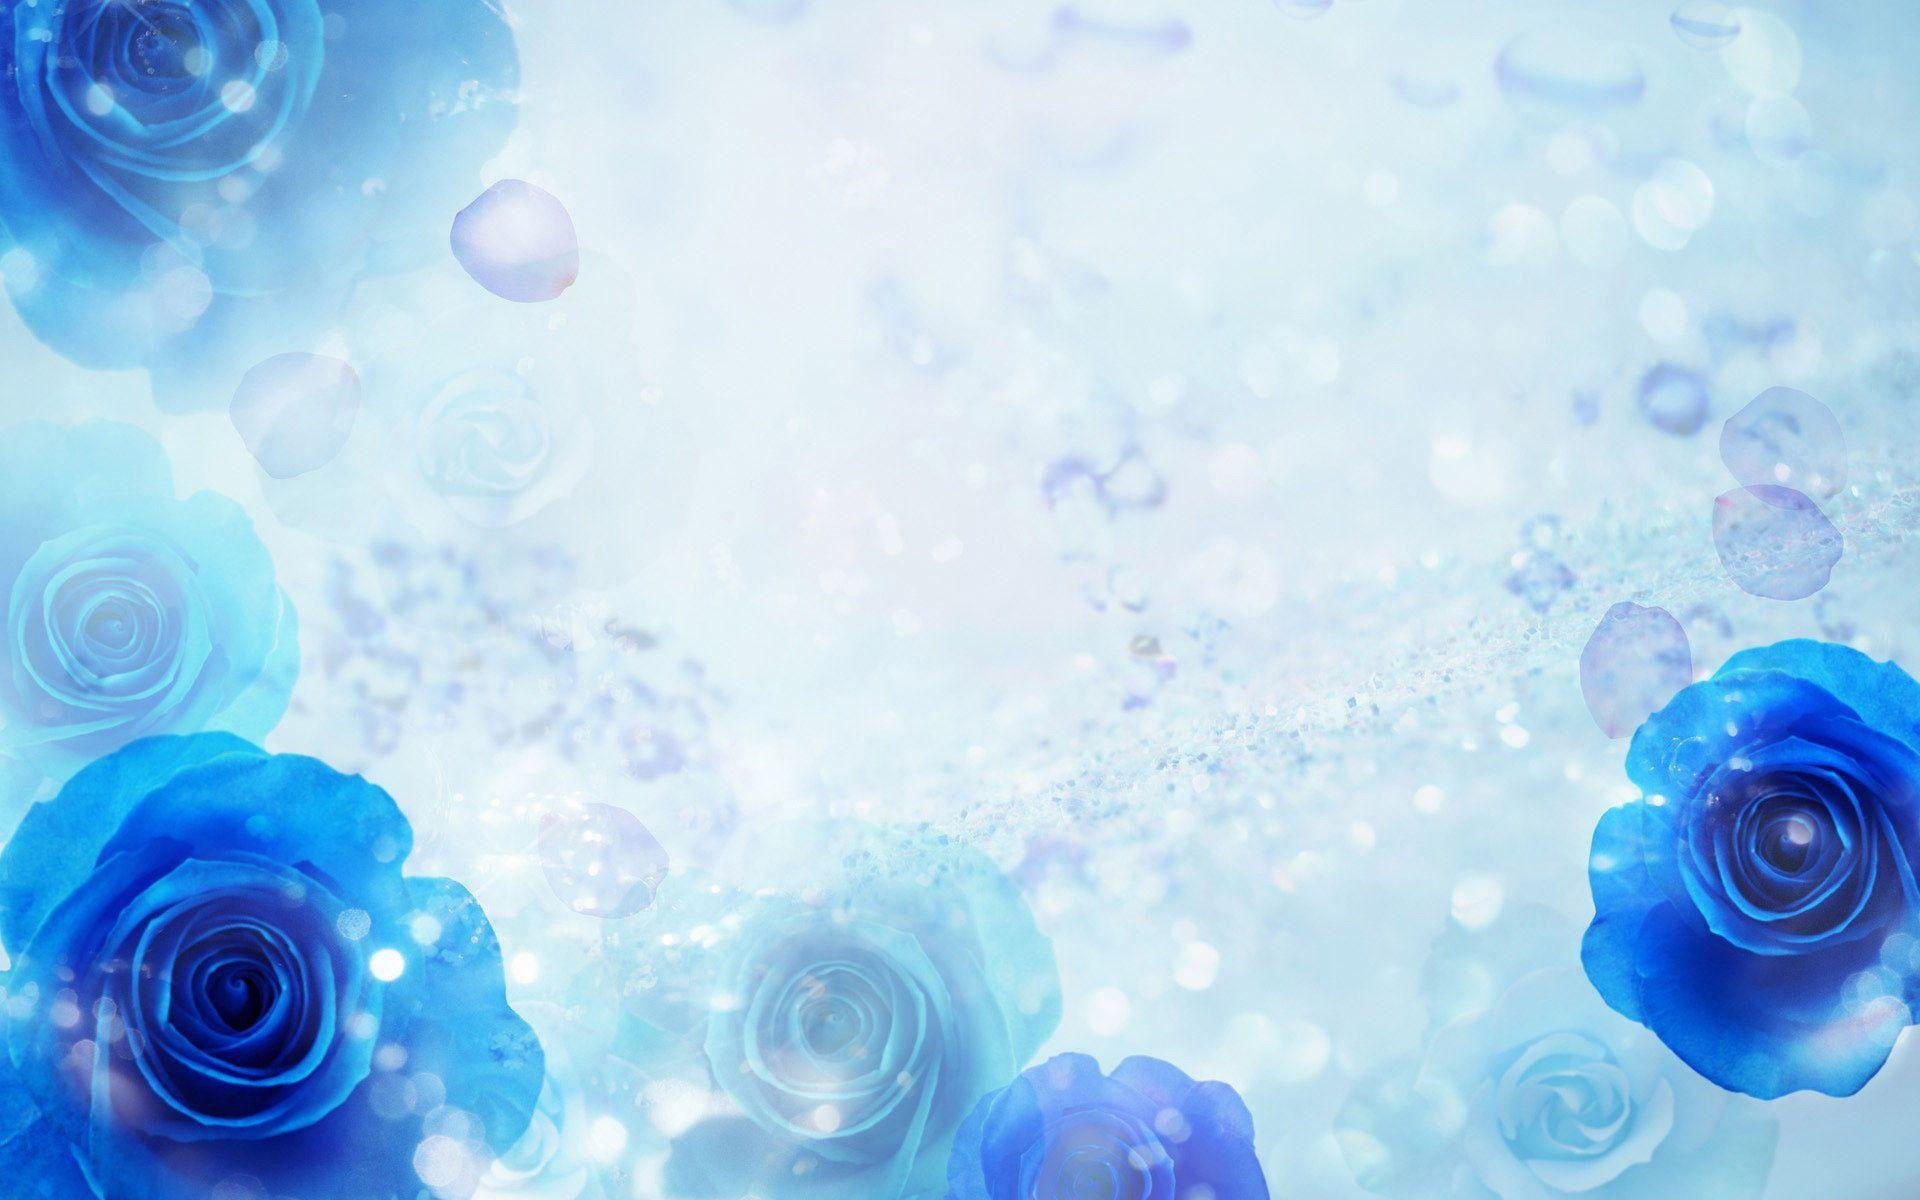 Blue Rose Backgrounds - Wallpaper Cave